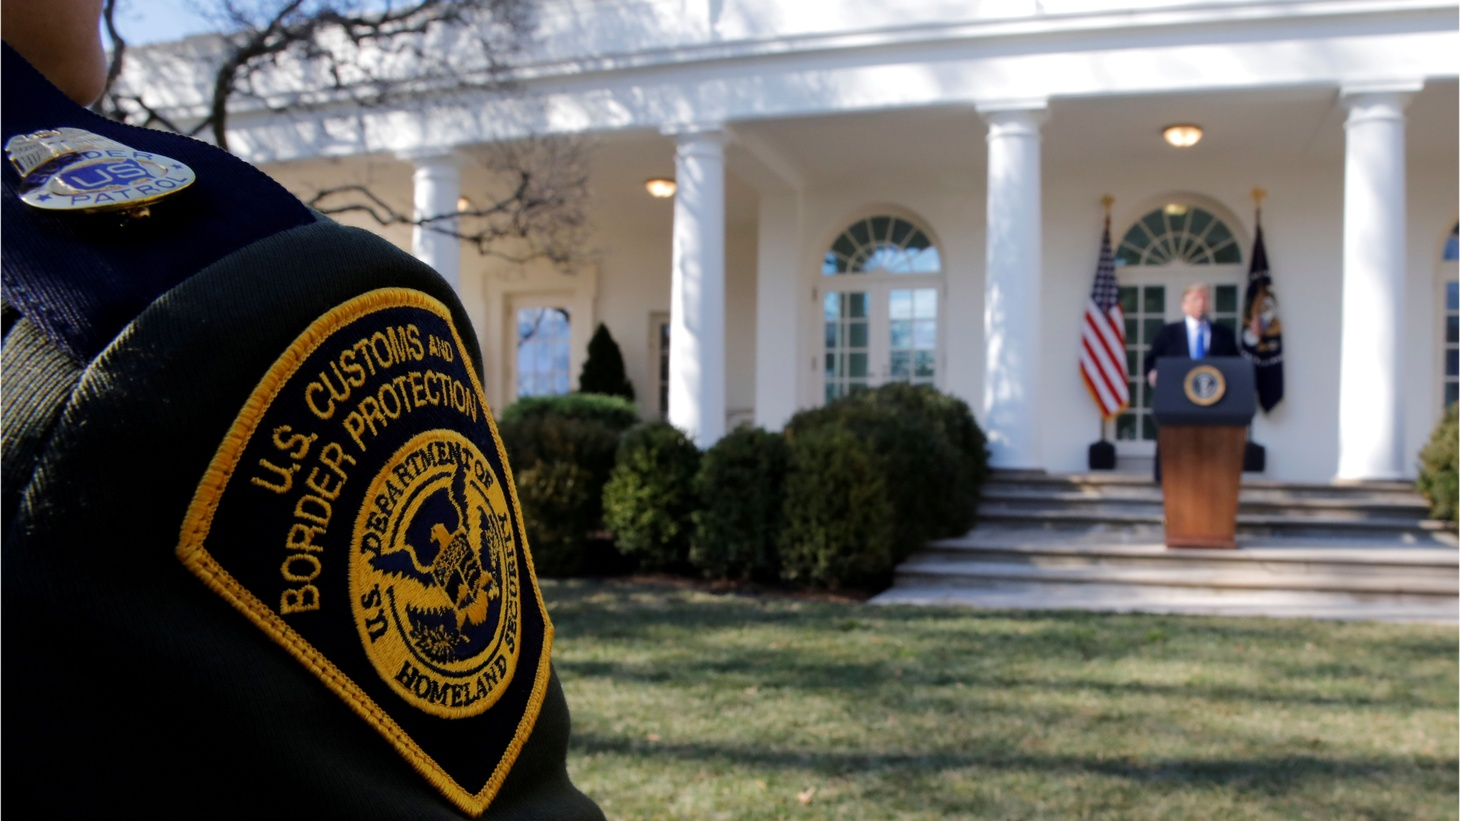 A U.S. Border Patrol agent listens from the front row as President Donald Trump declares a national emergency at the U.S.-Mexico border during remarks about border security in the Rose Garden of the White House in Washington, U.S., February 15th, 2019.